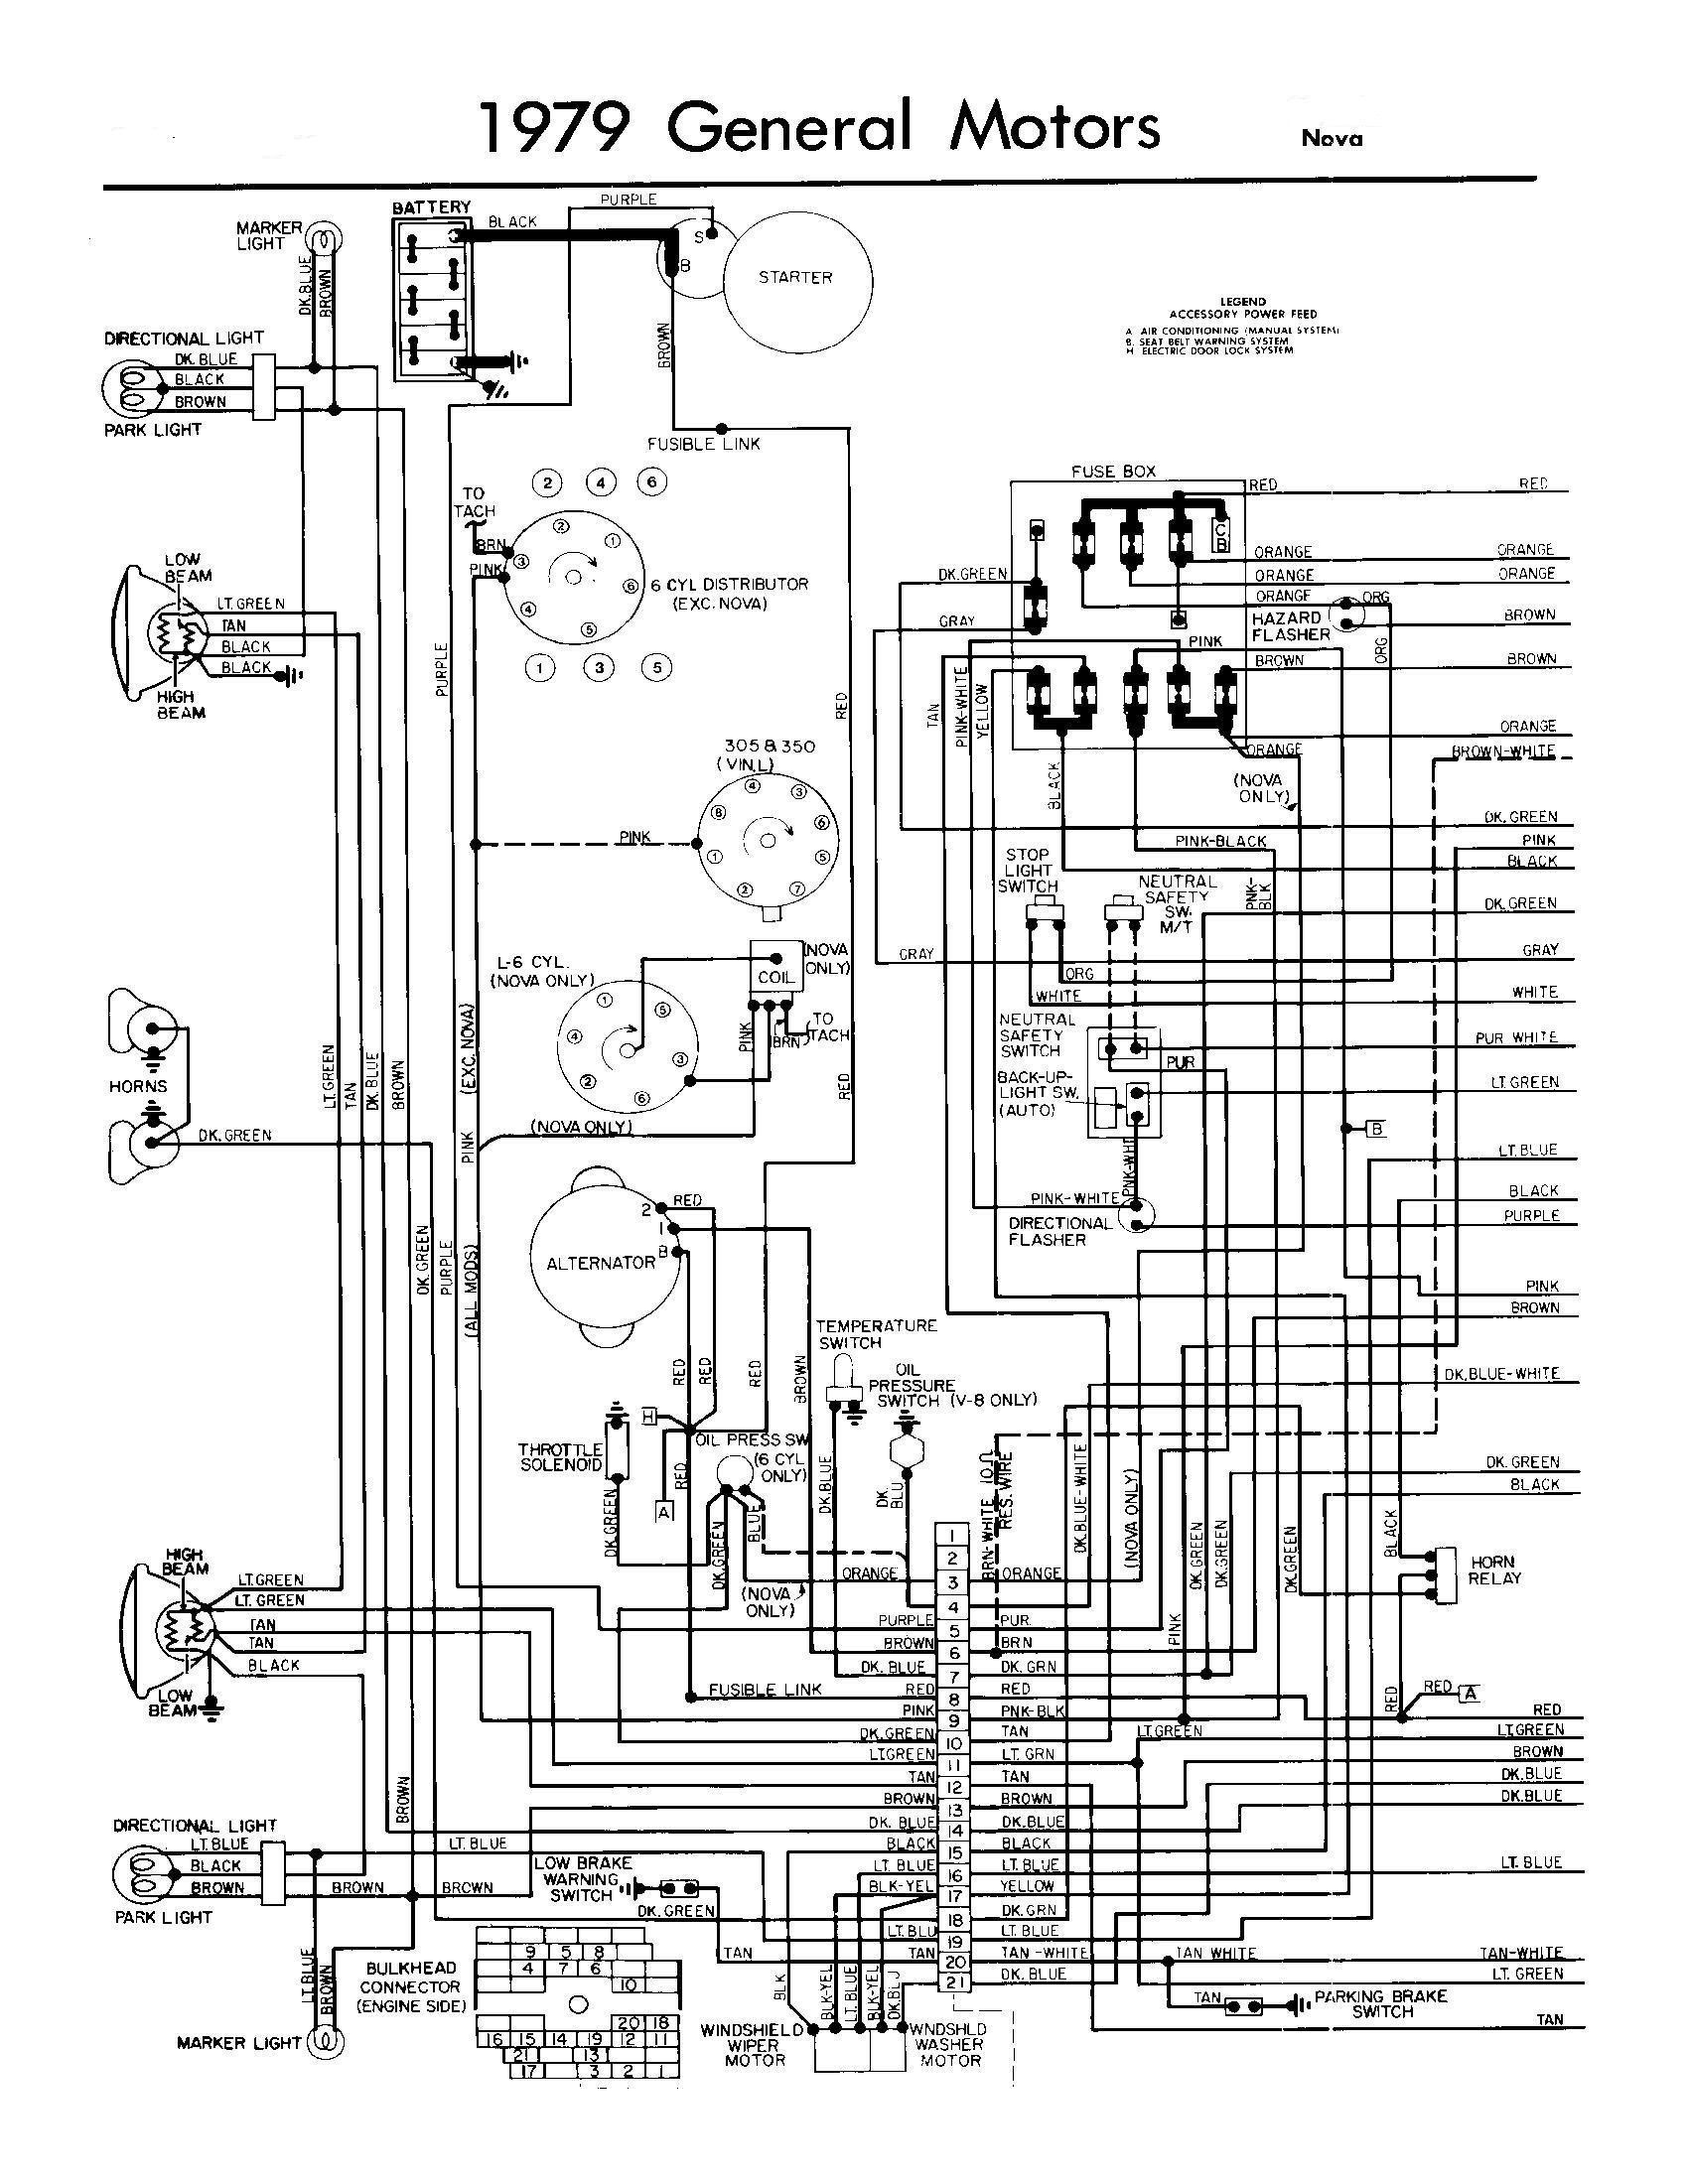 1971 camaro fuse box diagram wiring diagram1971 camaro fuse box on wiring diagram71 camaro fuse box wiring library1972 camaro fuse box diagram